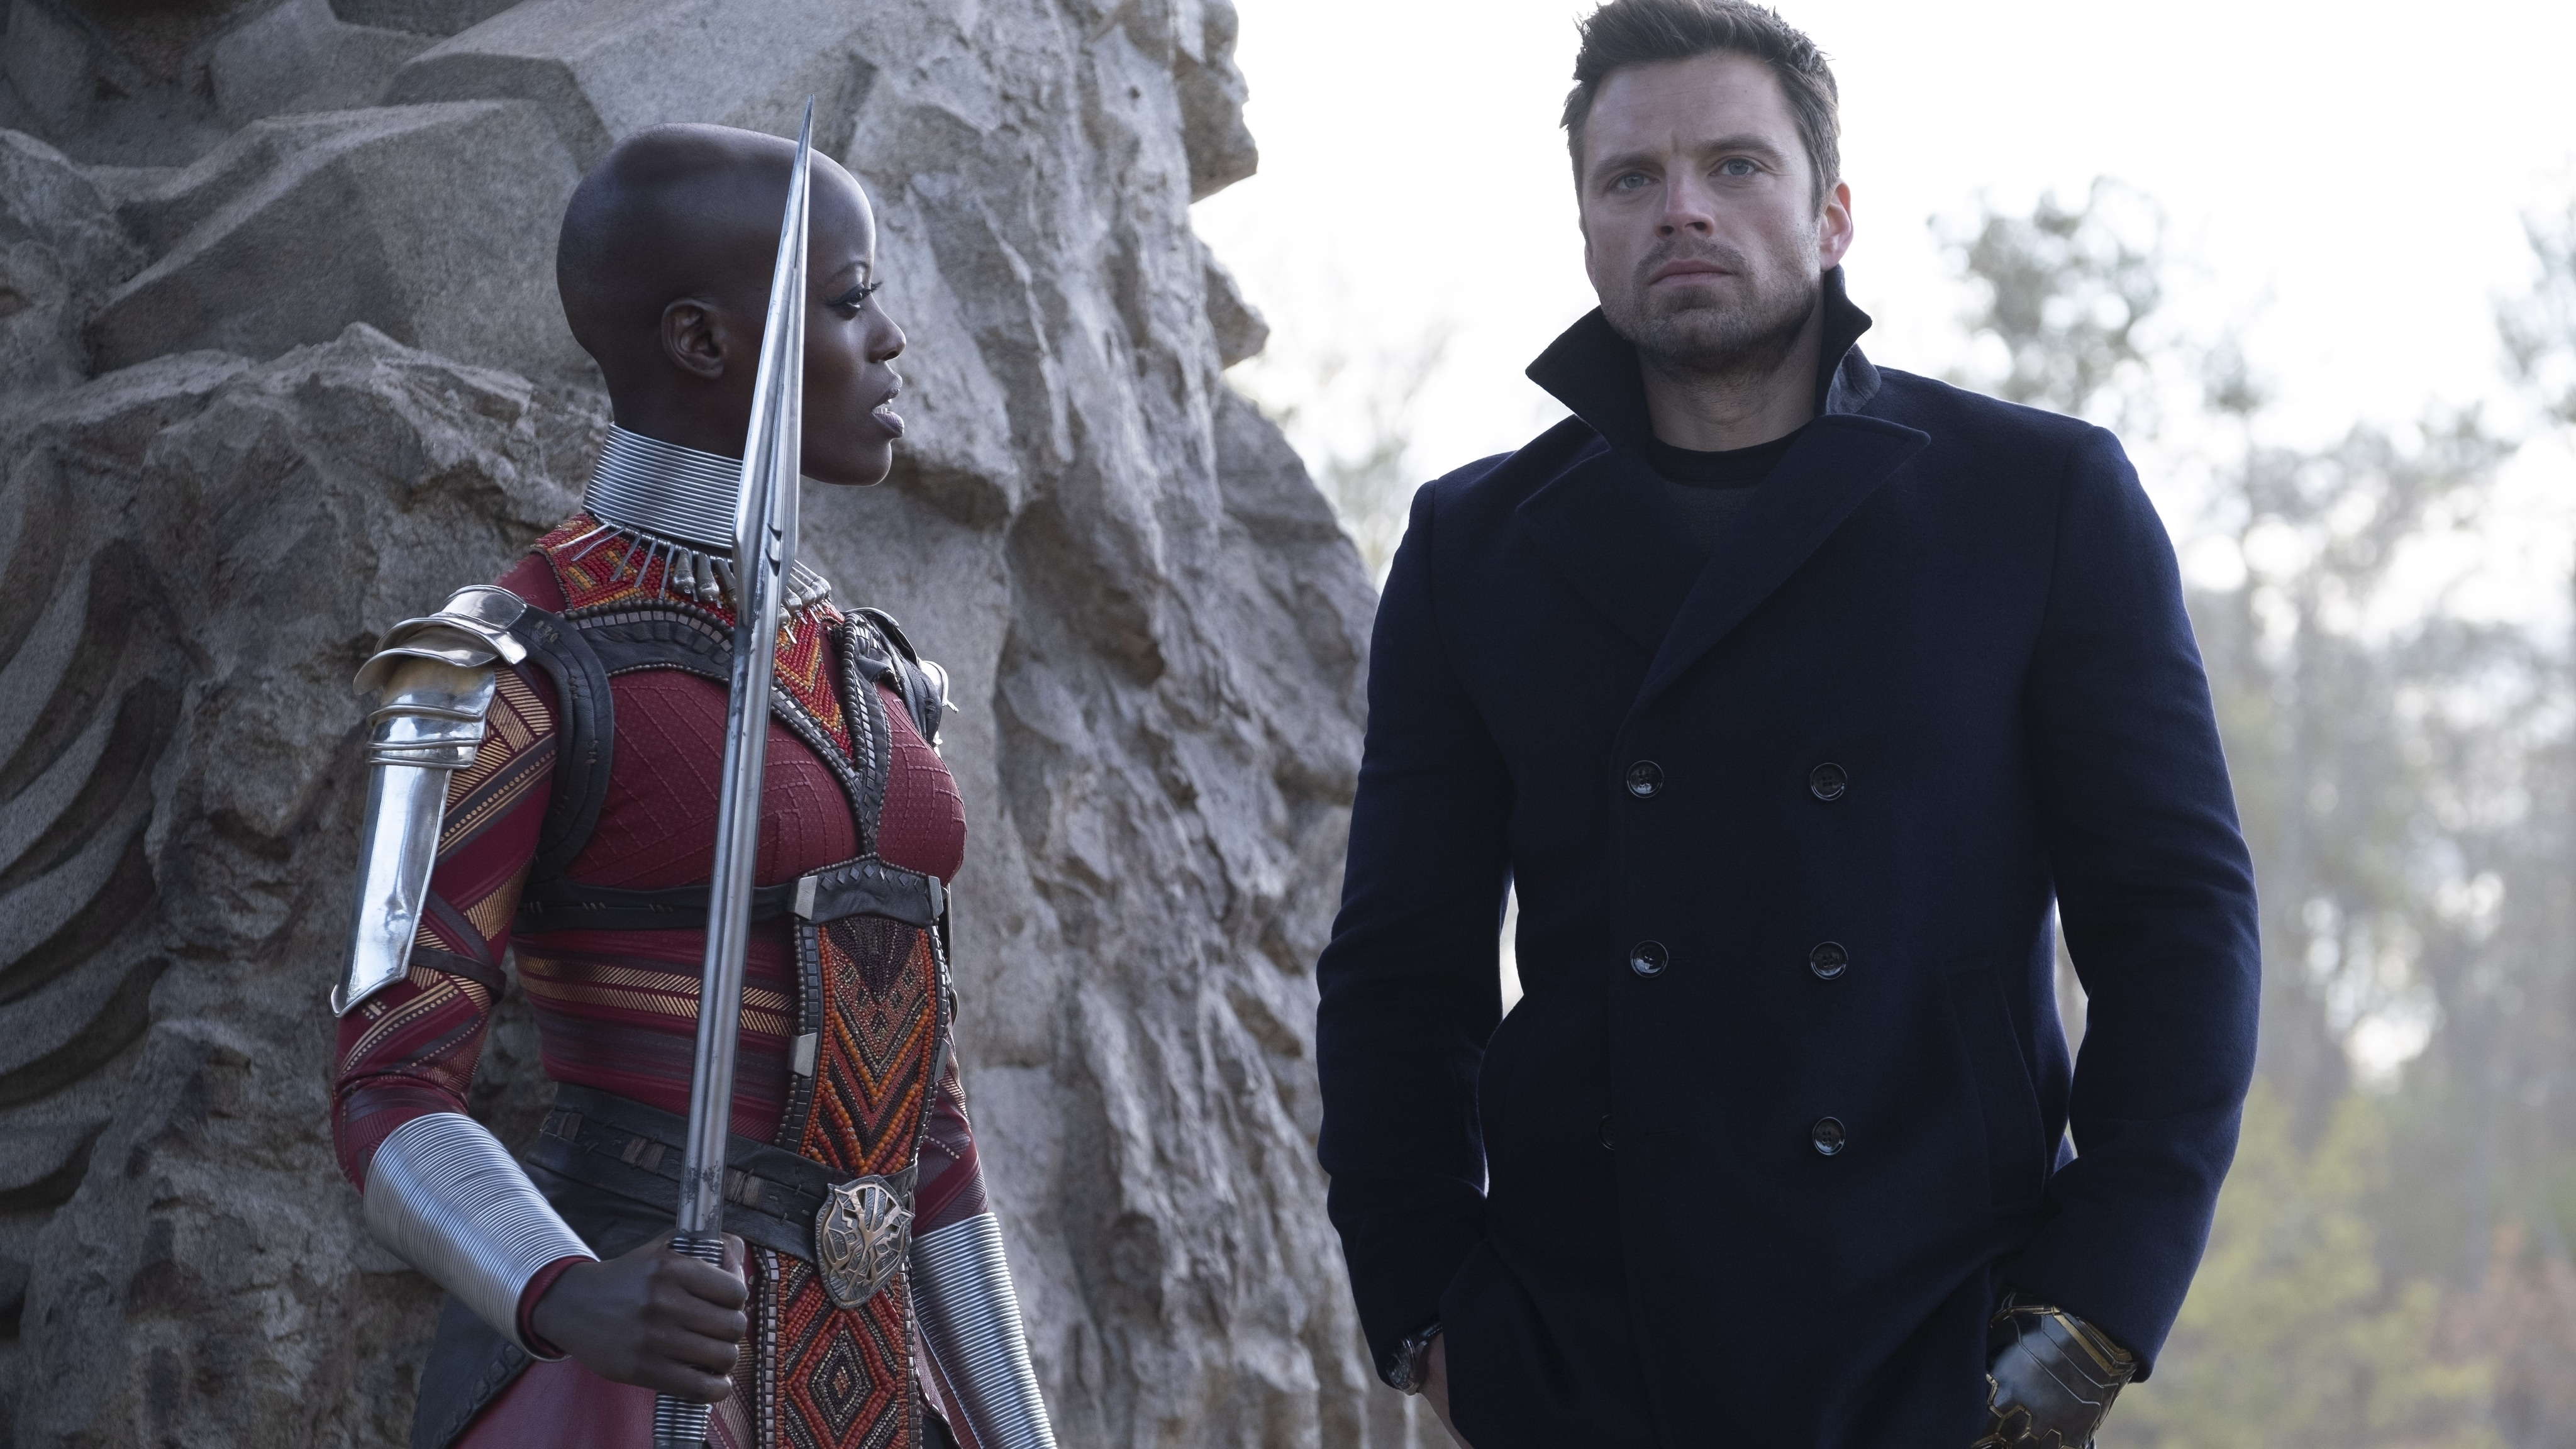 (L-R): Ayo (Florence Kasumba) and Winter Soldier/Bucky Barnes (Sebastian Stan) in Marvel Studios' THE FALCON AND THE WINTER SOLDIER exclusively on Disney+. Photo by Chuck Zlotnick. ©Marvel Studios 2021. All Rights Reserved.